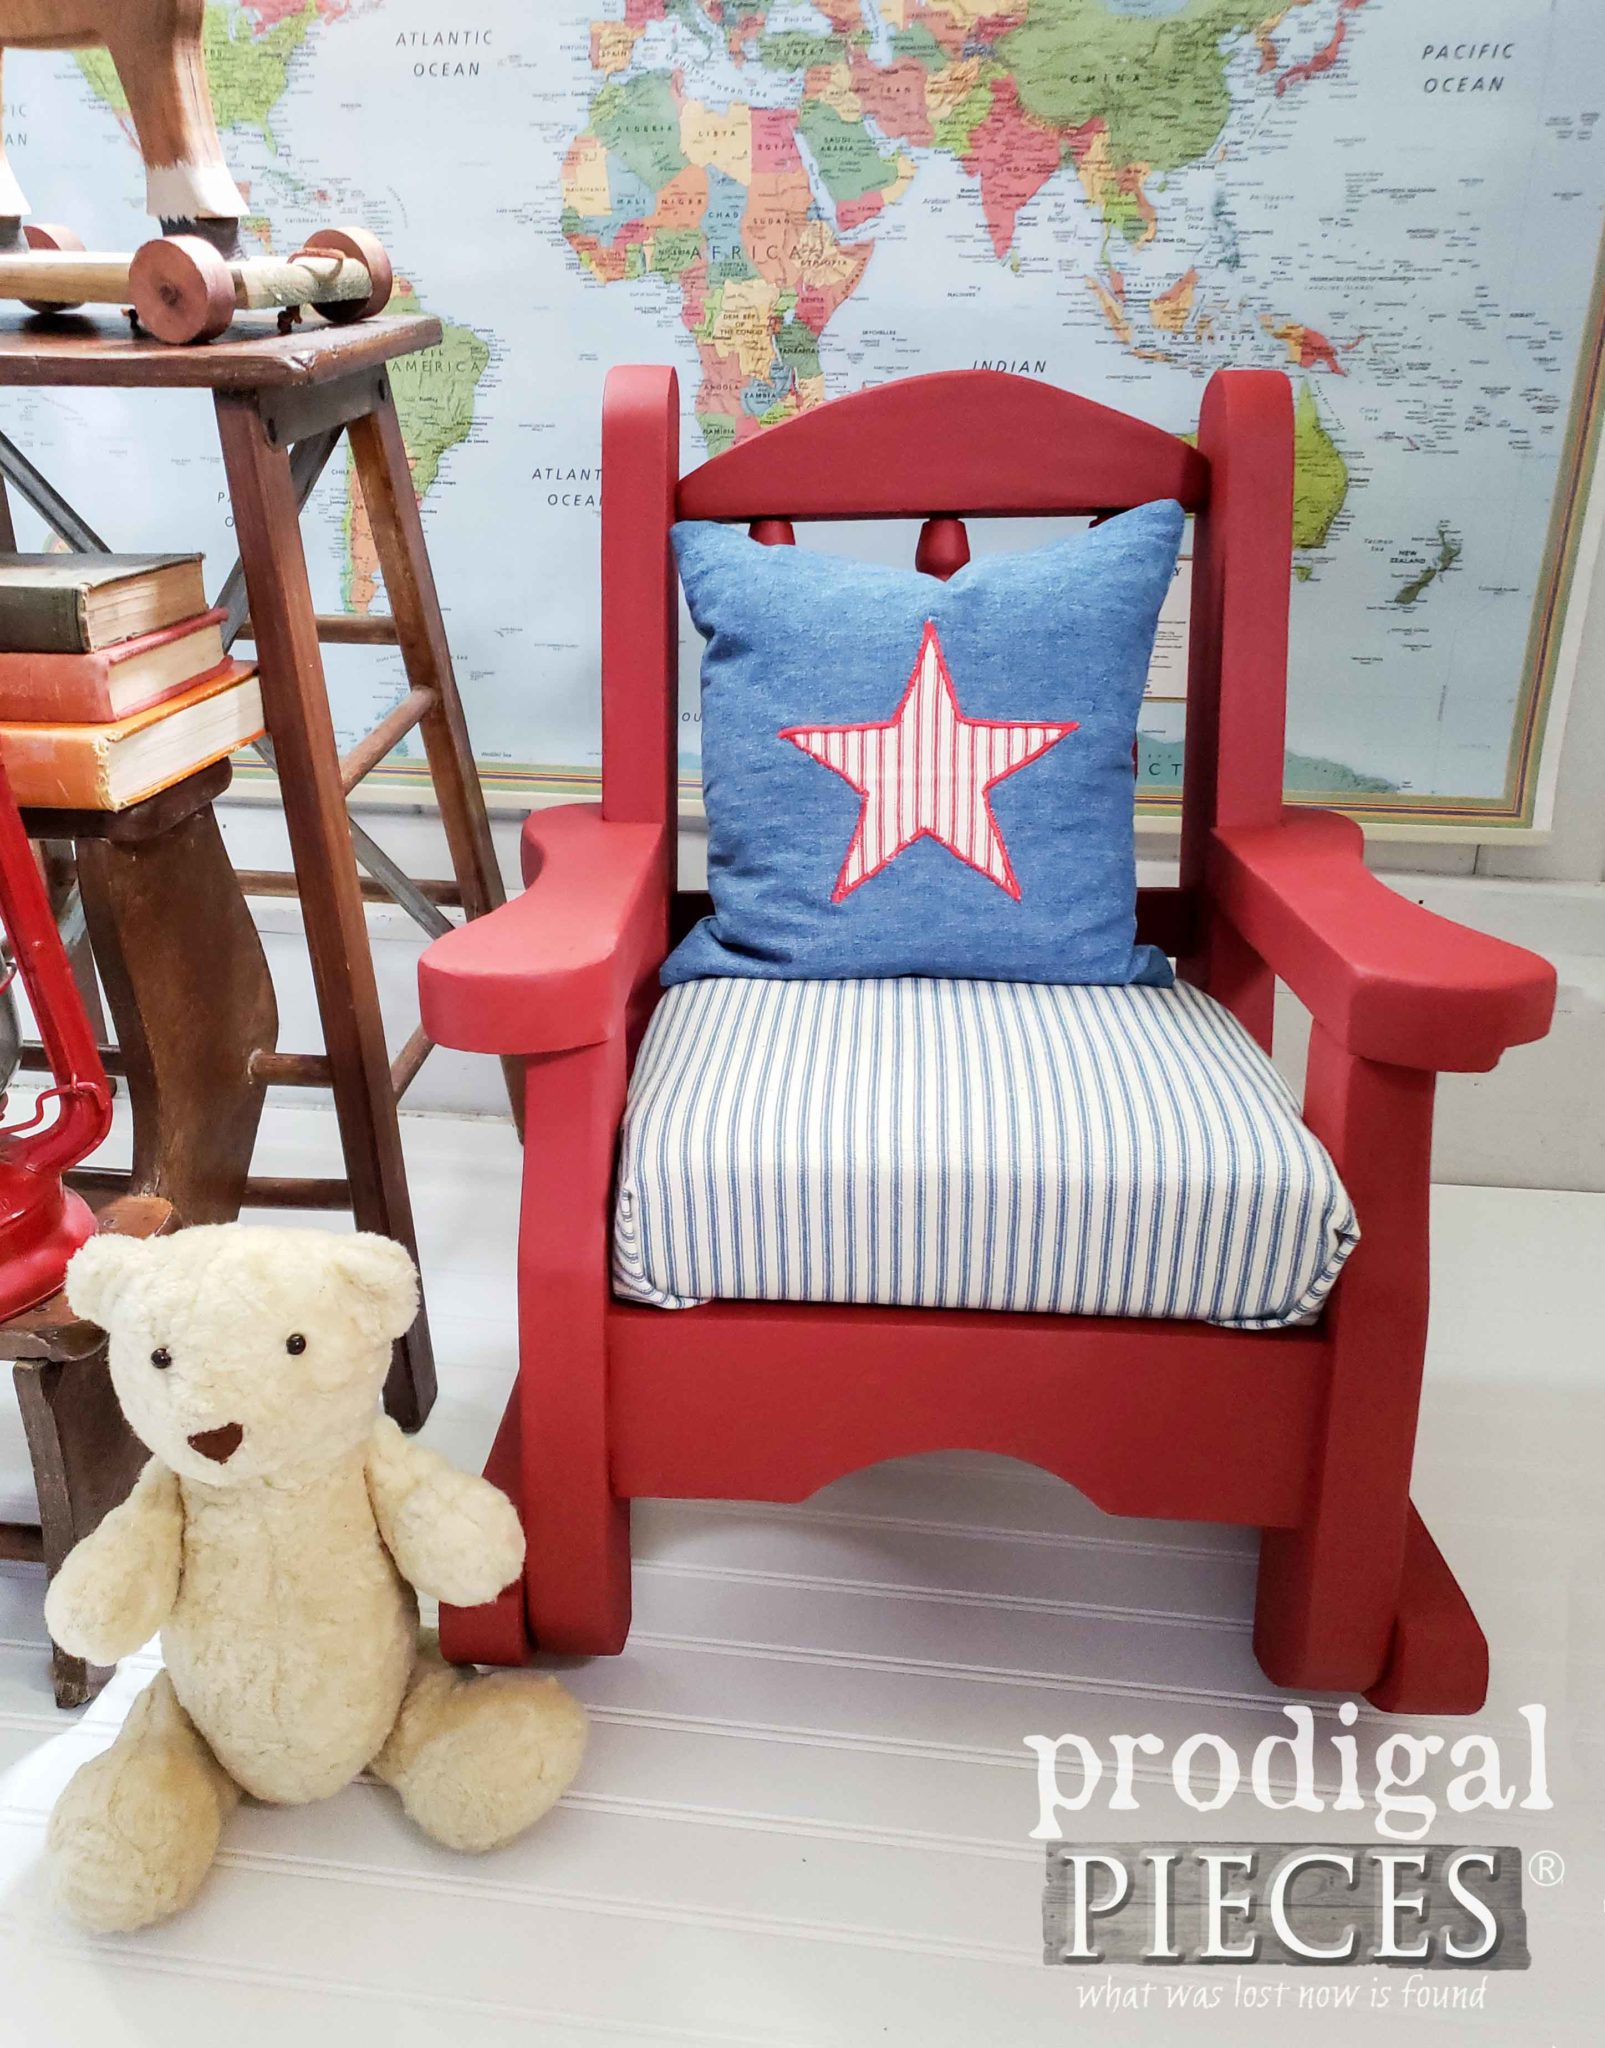 Americana Kid's Vintage Rocking Chair with New Upholstery and Paint by Larissa of Prodigal Pieces | prodigalpieces.com